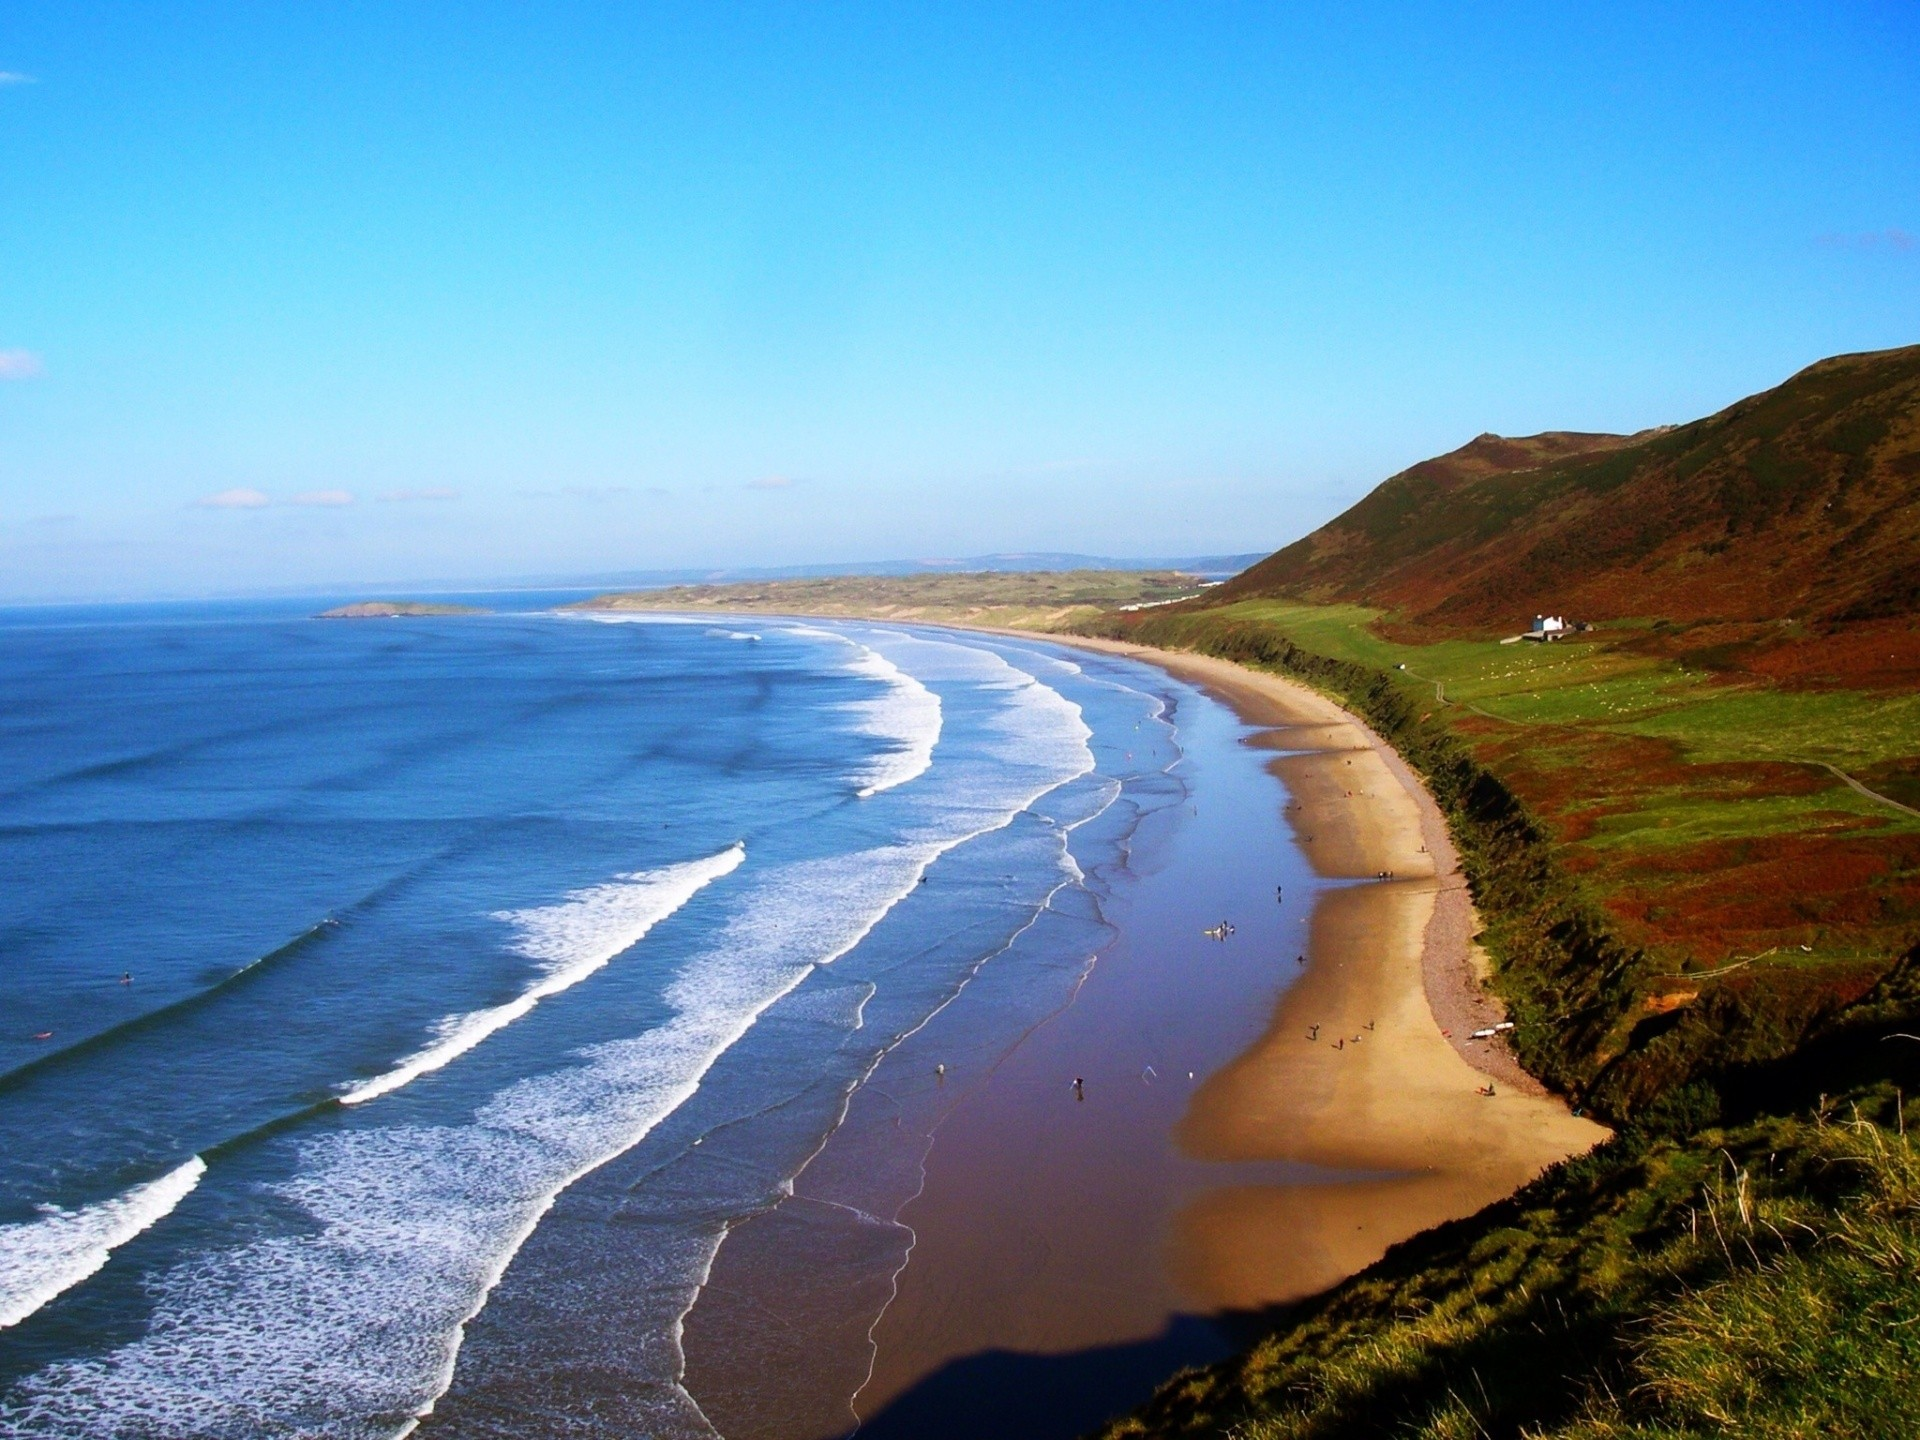 Steve's photo of Llangennith / Rhossili